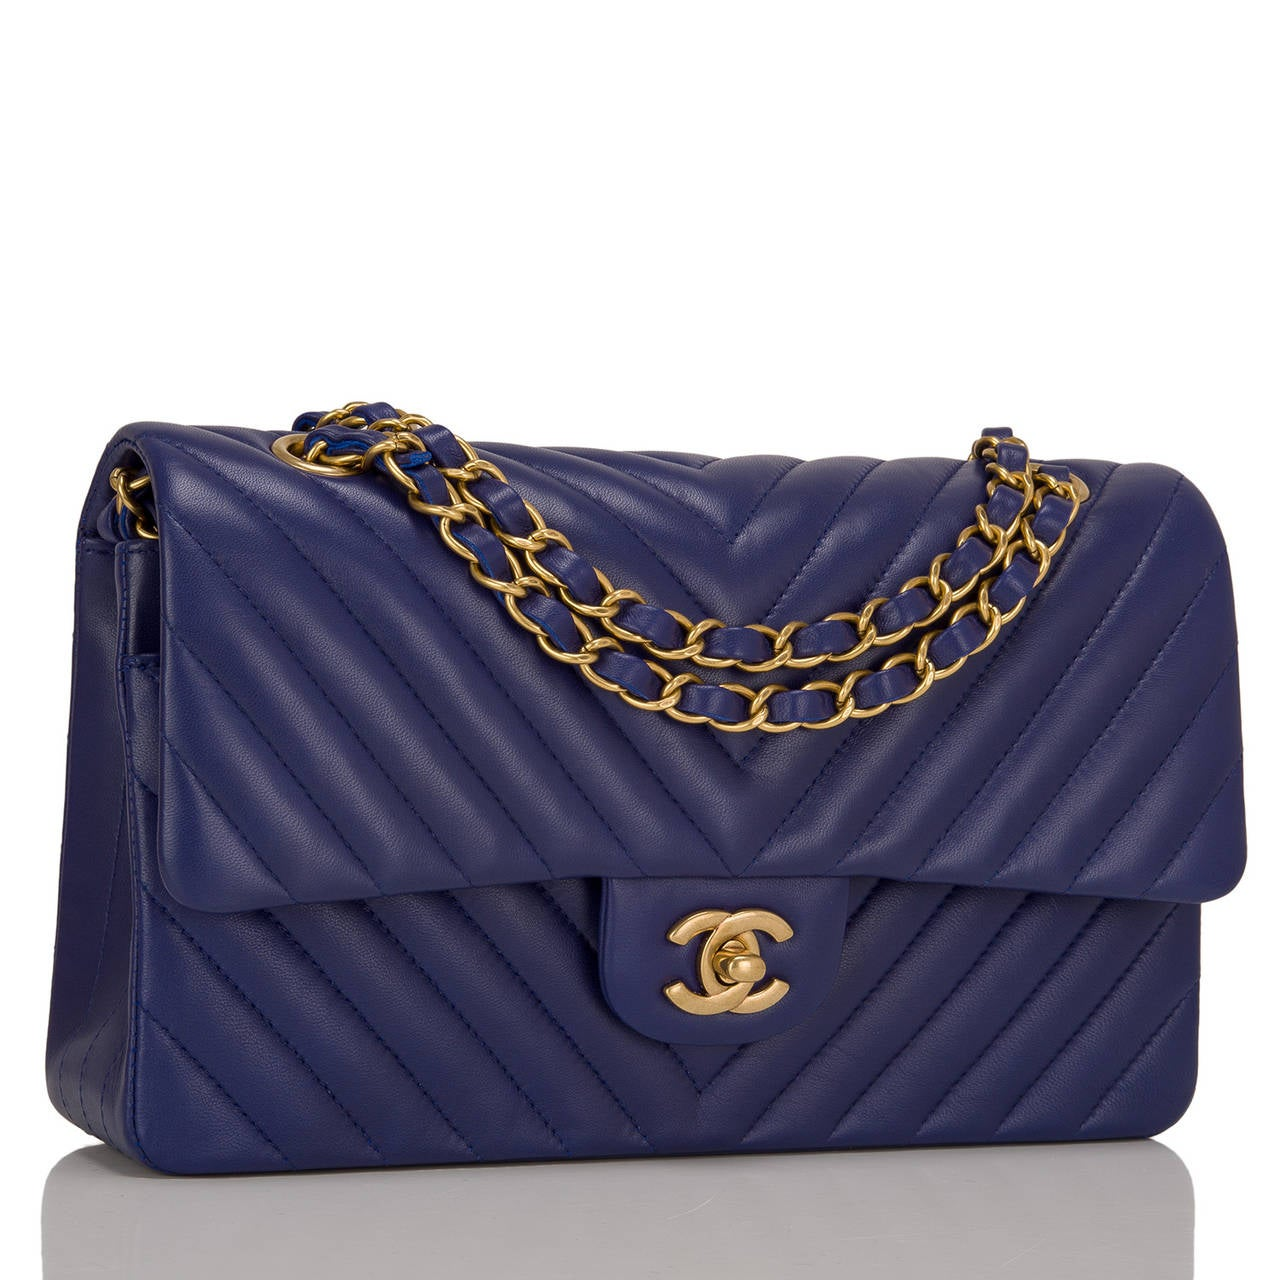 This limited edition Chanel Blue Chevron Medium classic double flap bag in blue lambskin leather and aged gold tone hardware is an edgy take on the iconic Chanel Classic bag. It features a front flap with signature CC turnlock closure, half moon